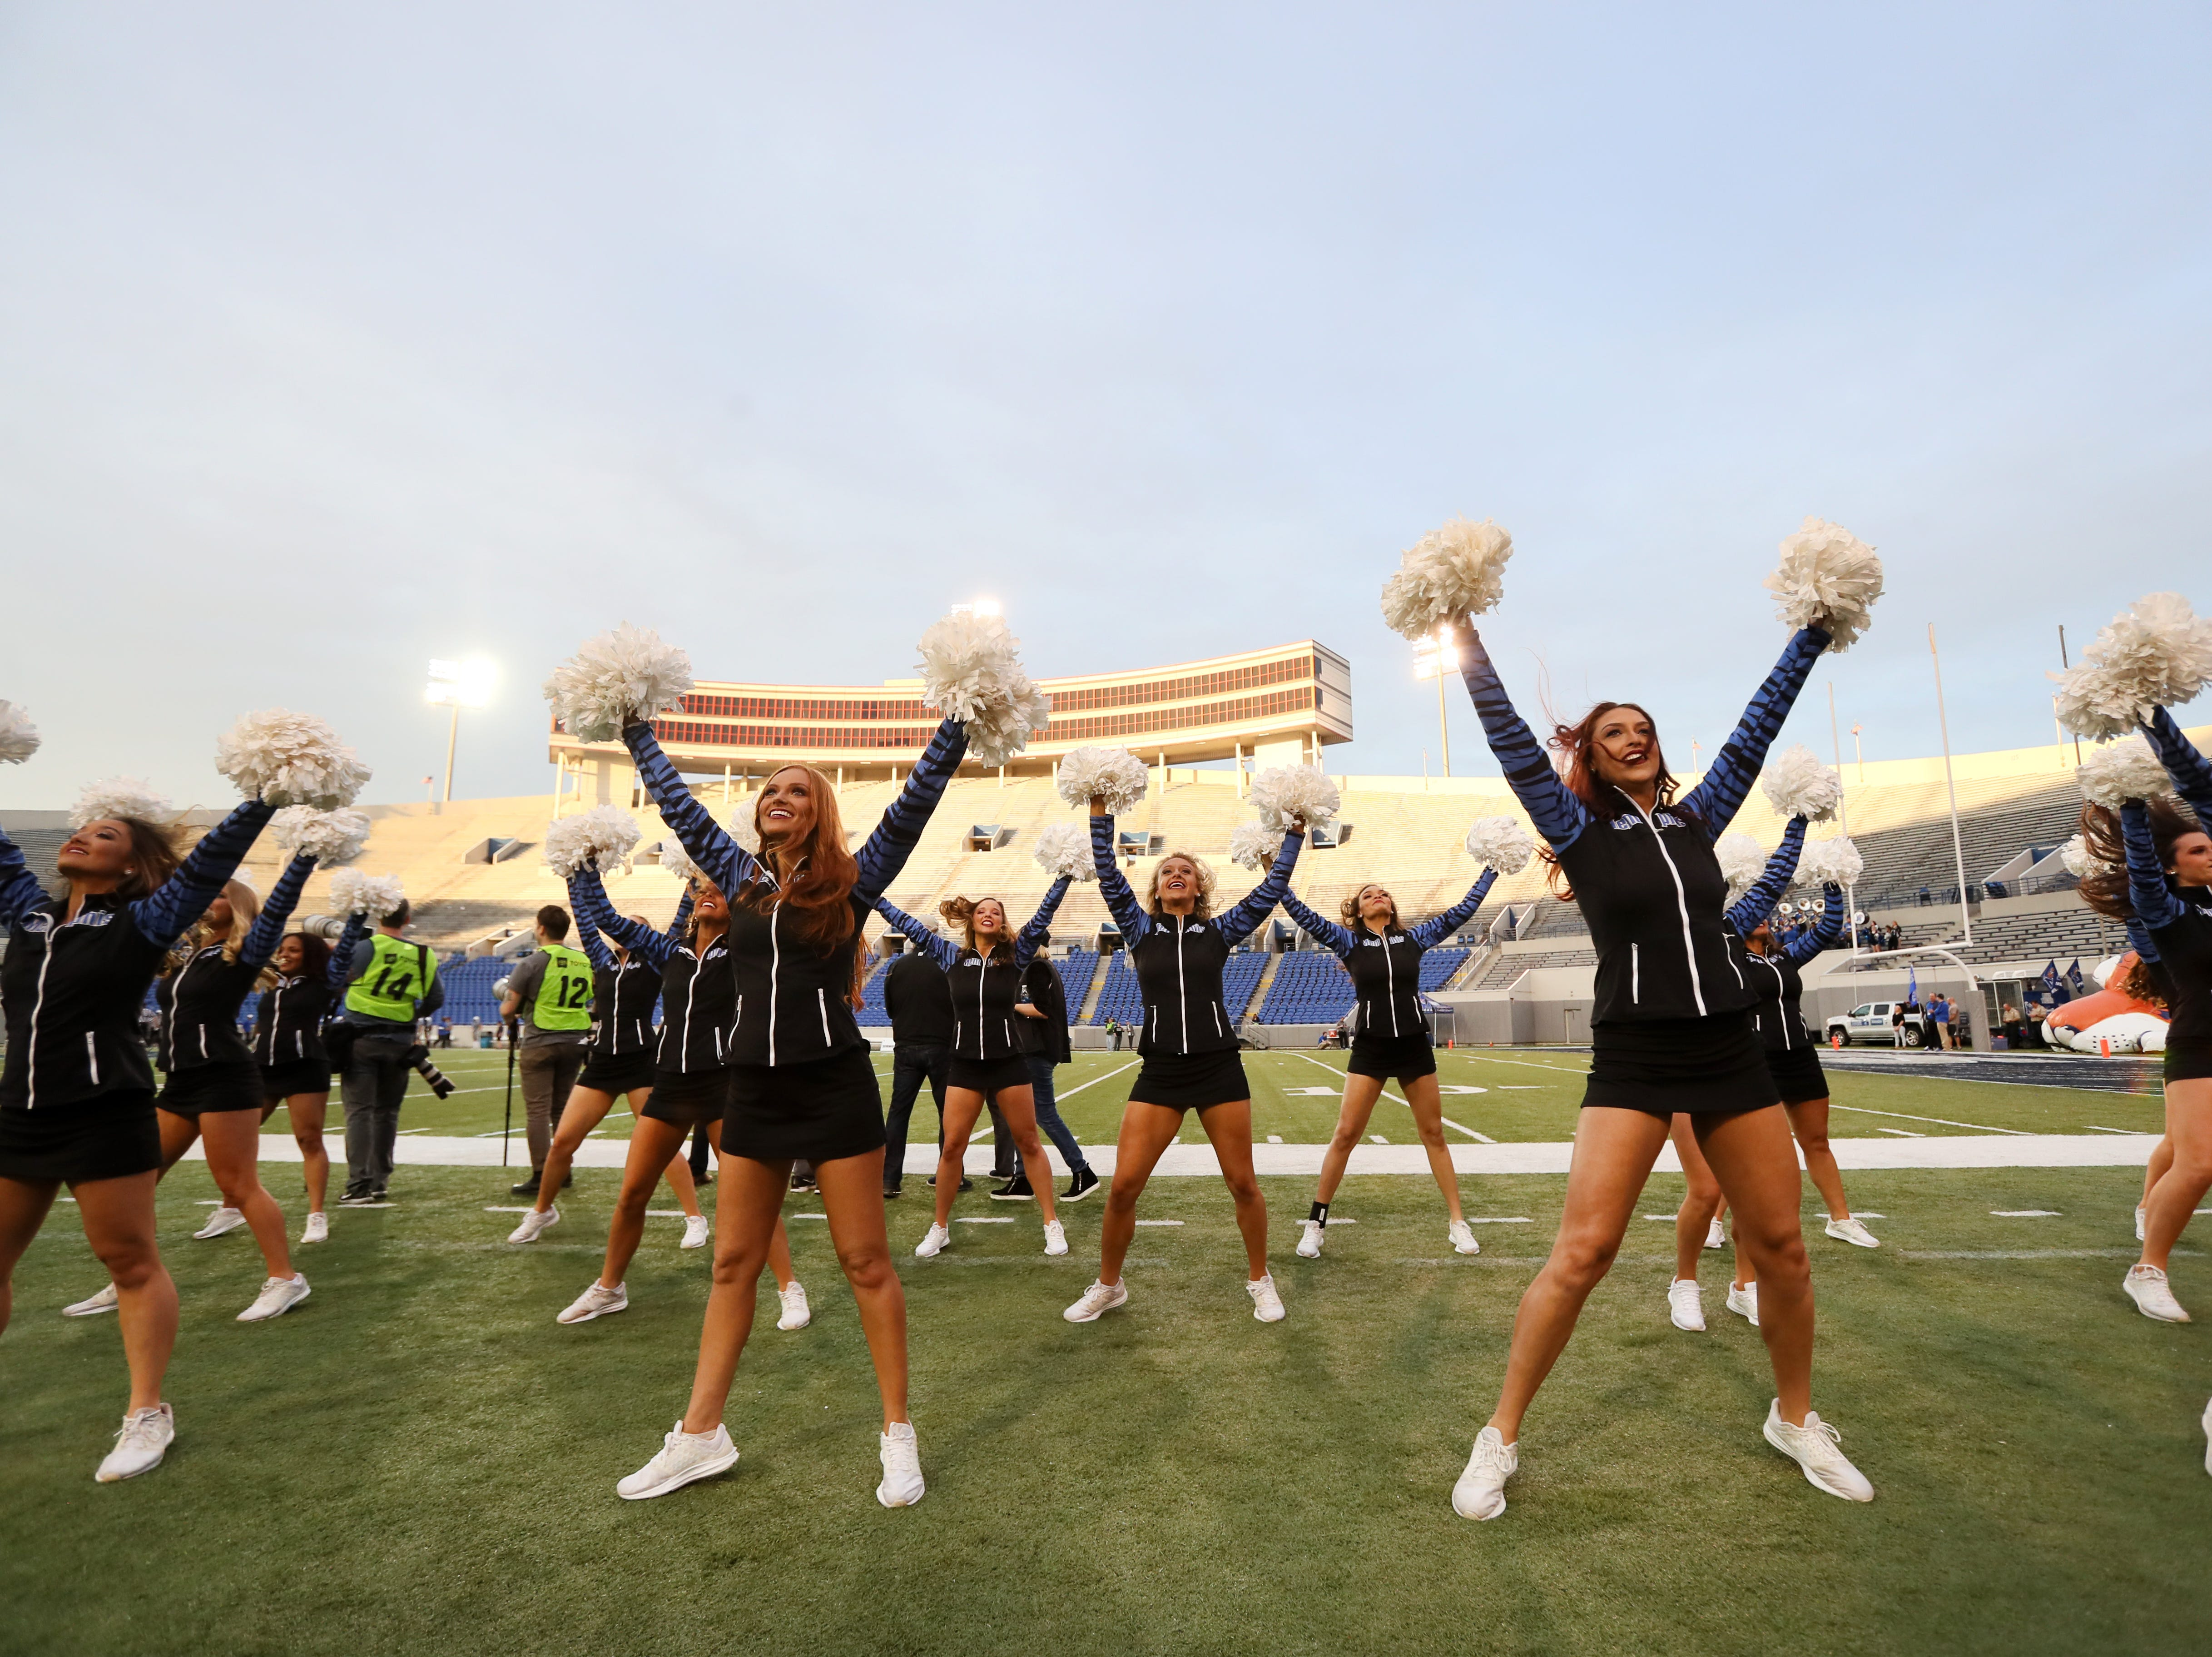 Memphis Tigers cheerleaders perform during their Friday Night Stripes spring game at Liberty Bowl Memorial Stadium on Friday, April 12, 2019.